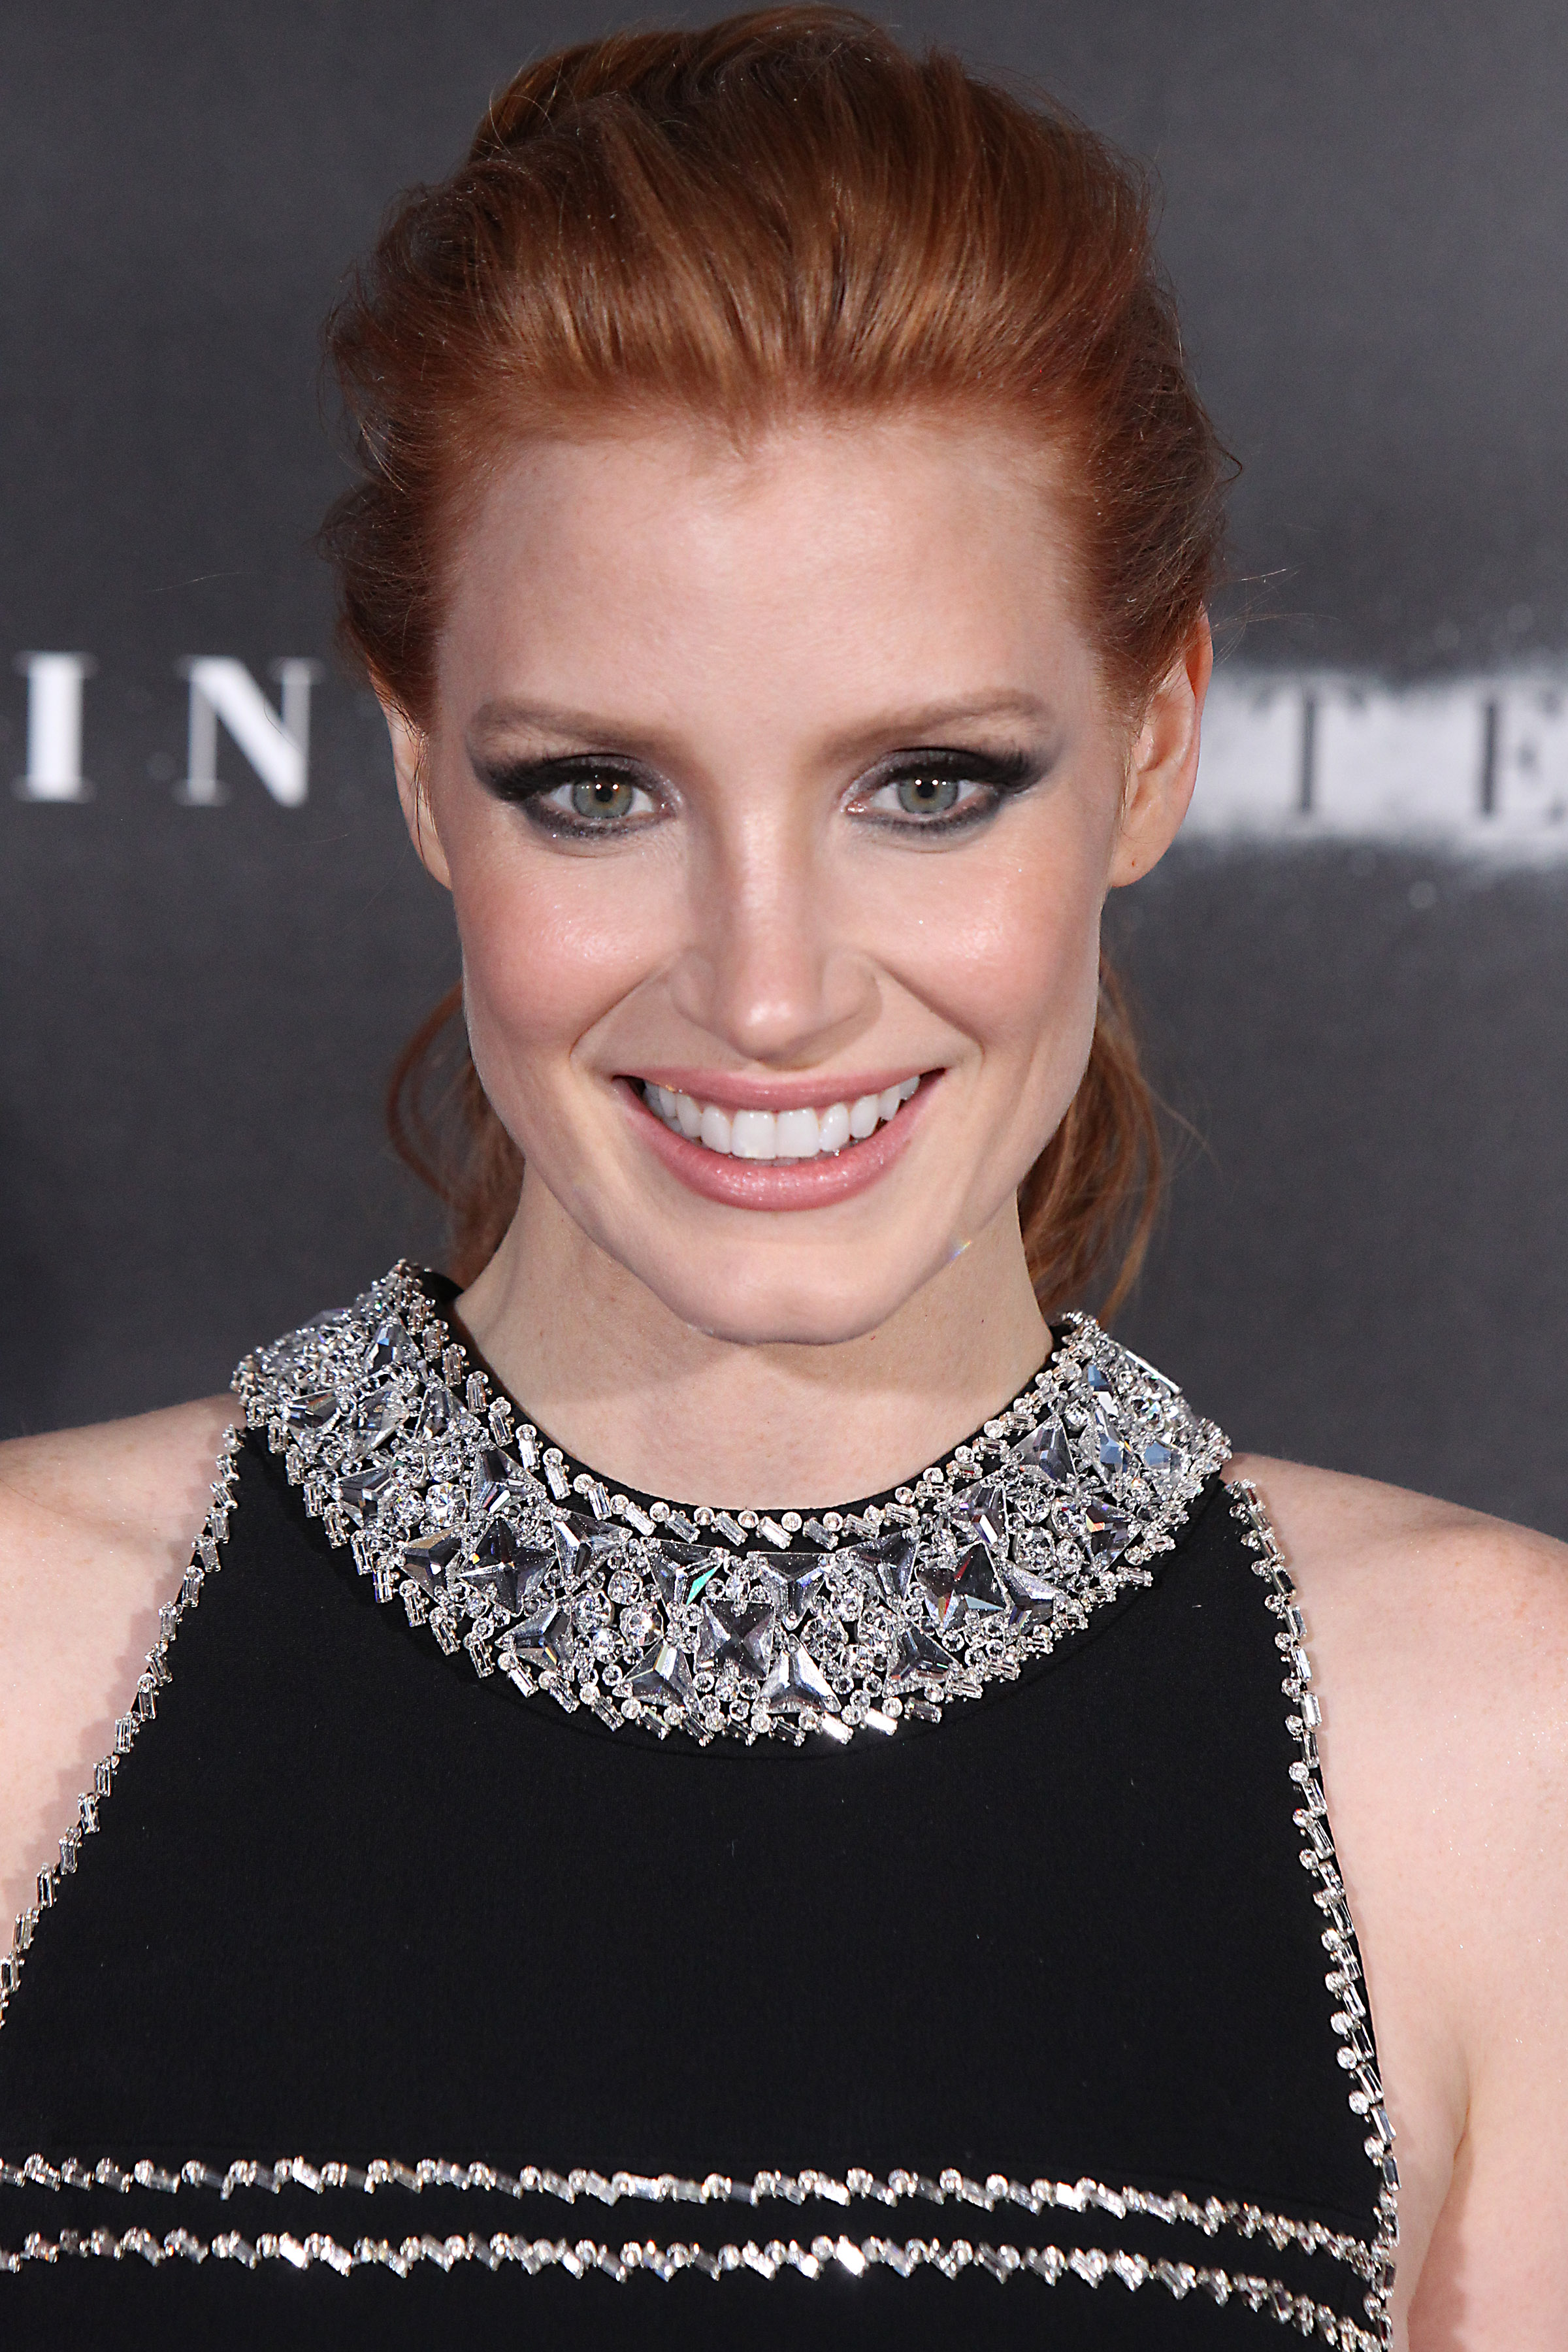 Jessica Chastain walks the red carpet at the 'Interstellar' premiere at the AMC Lincoln Square in NYC